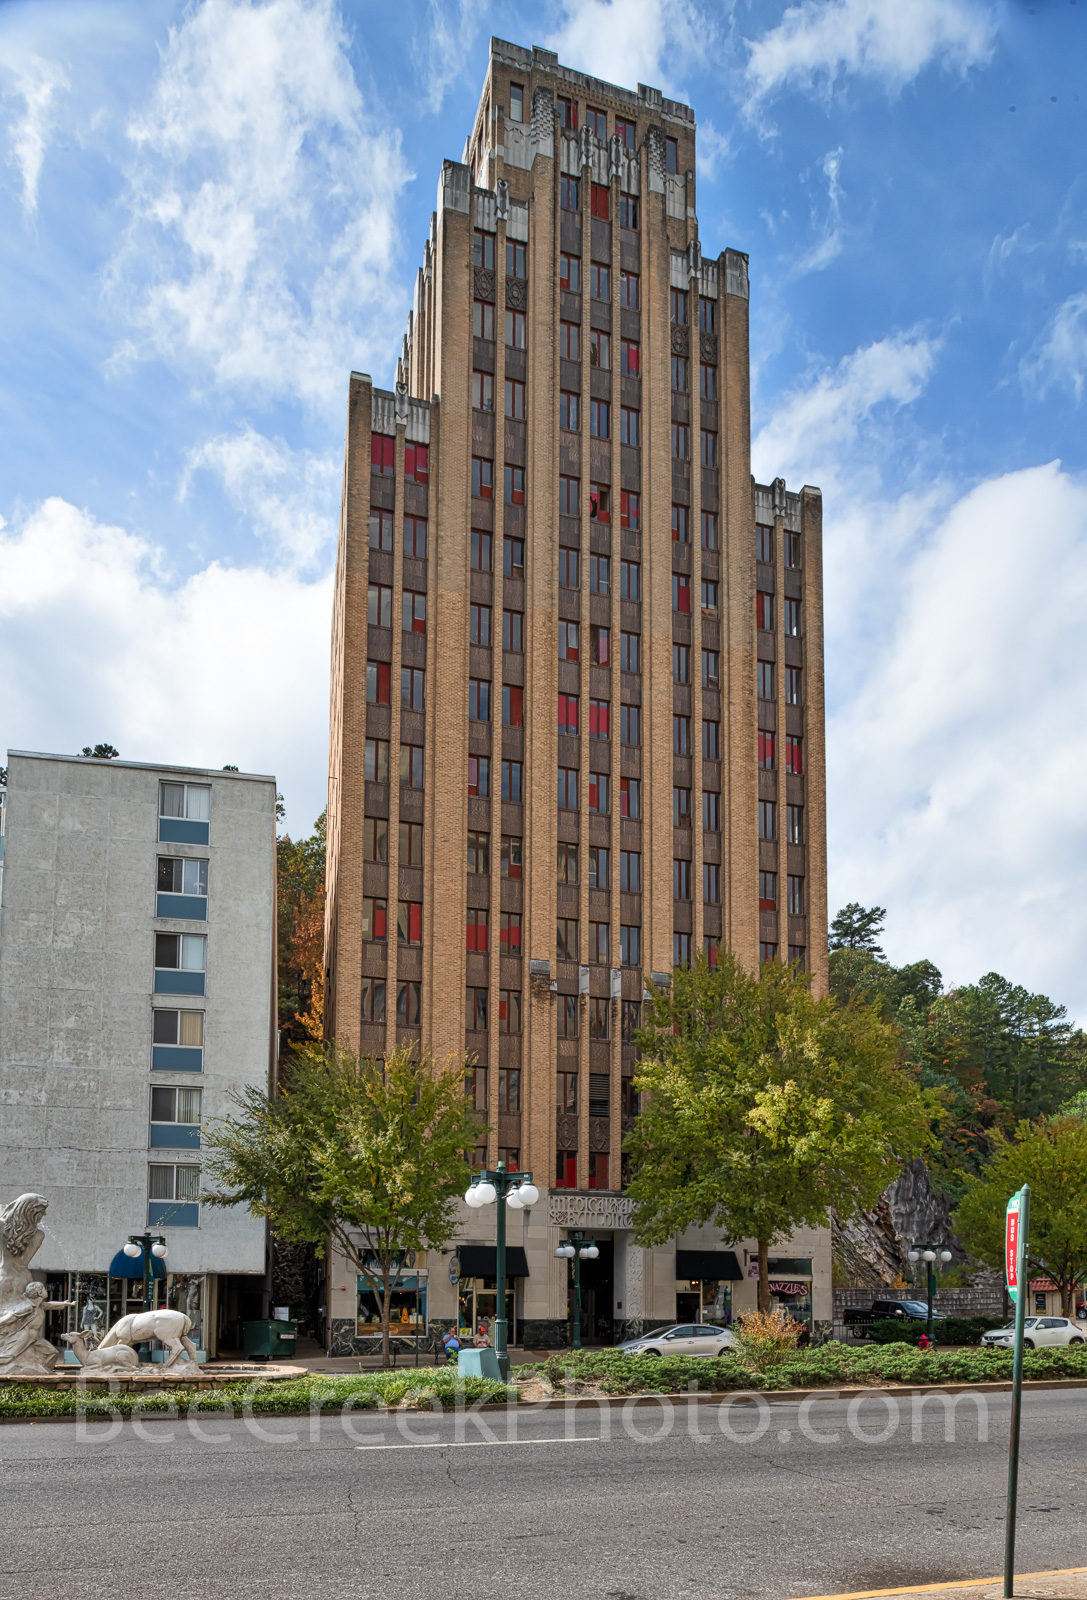 Medical Arts Building,central avenue,  Hot Springs, downtown, Arkansas, art decor, tallest building,, photo